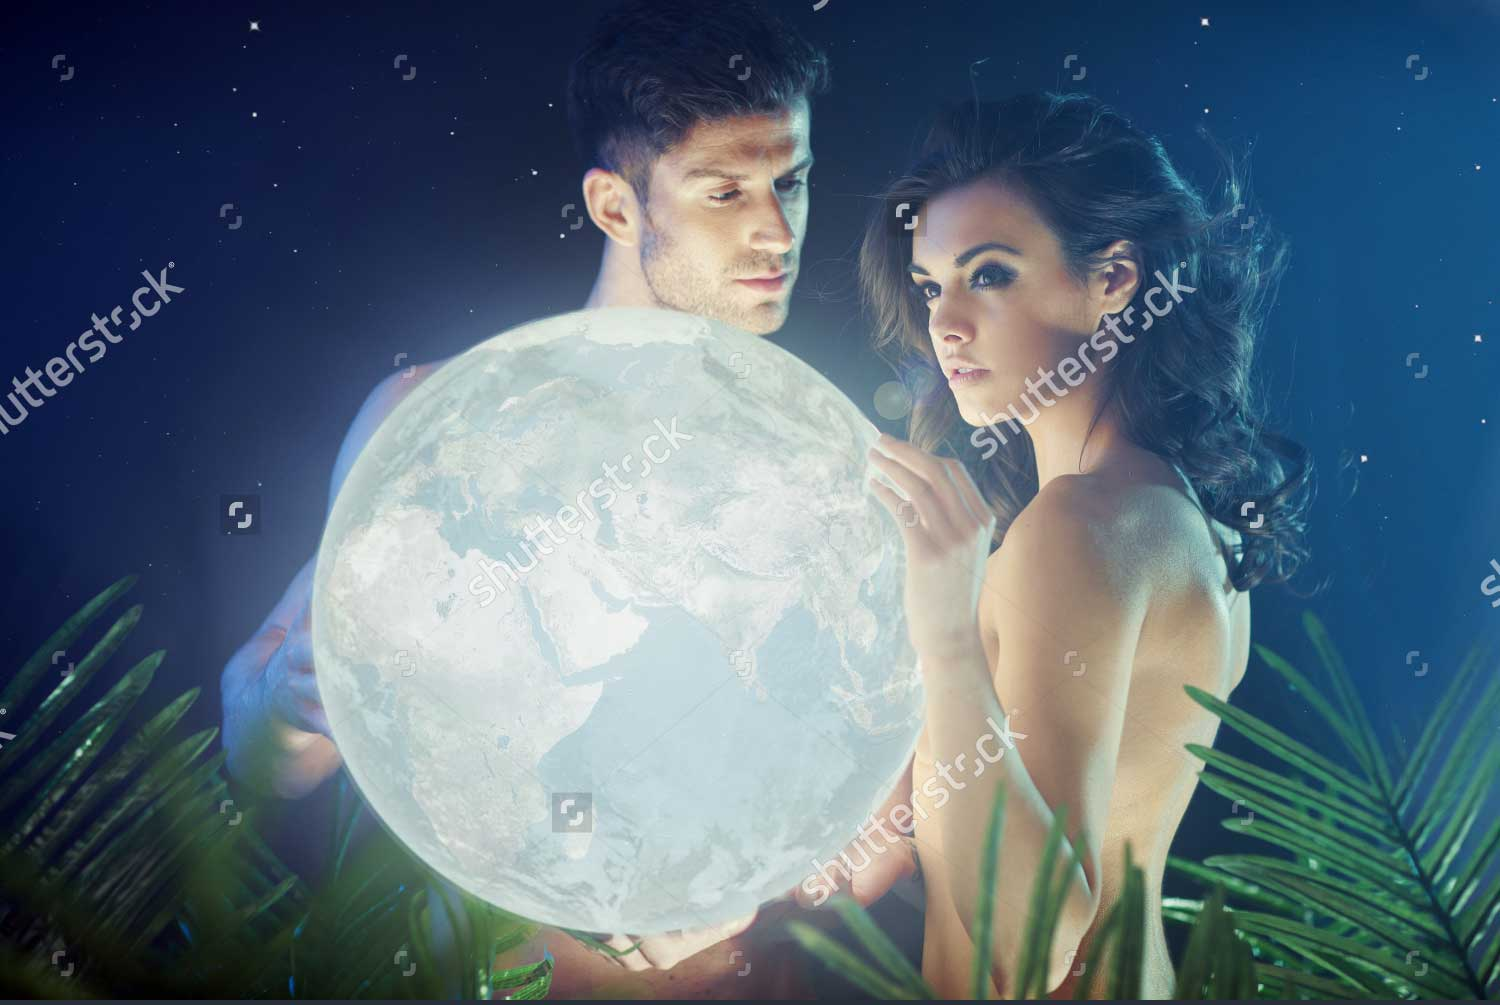 Romantic stock photo of couple in the jungle with a moon from Shutterstock for Sugar Moon spoof Jennifer Hallock steamy historical